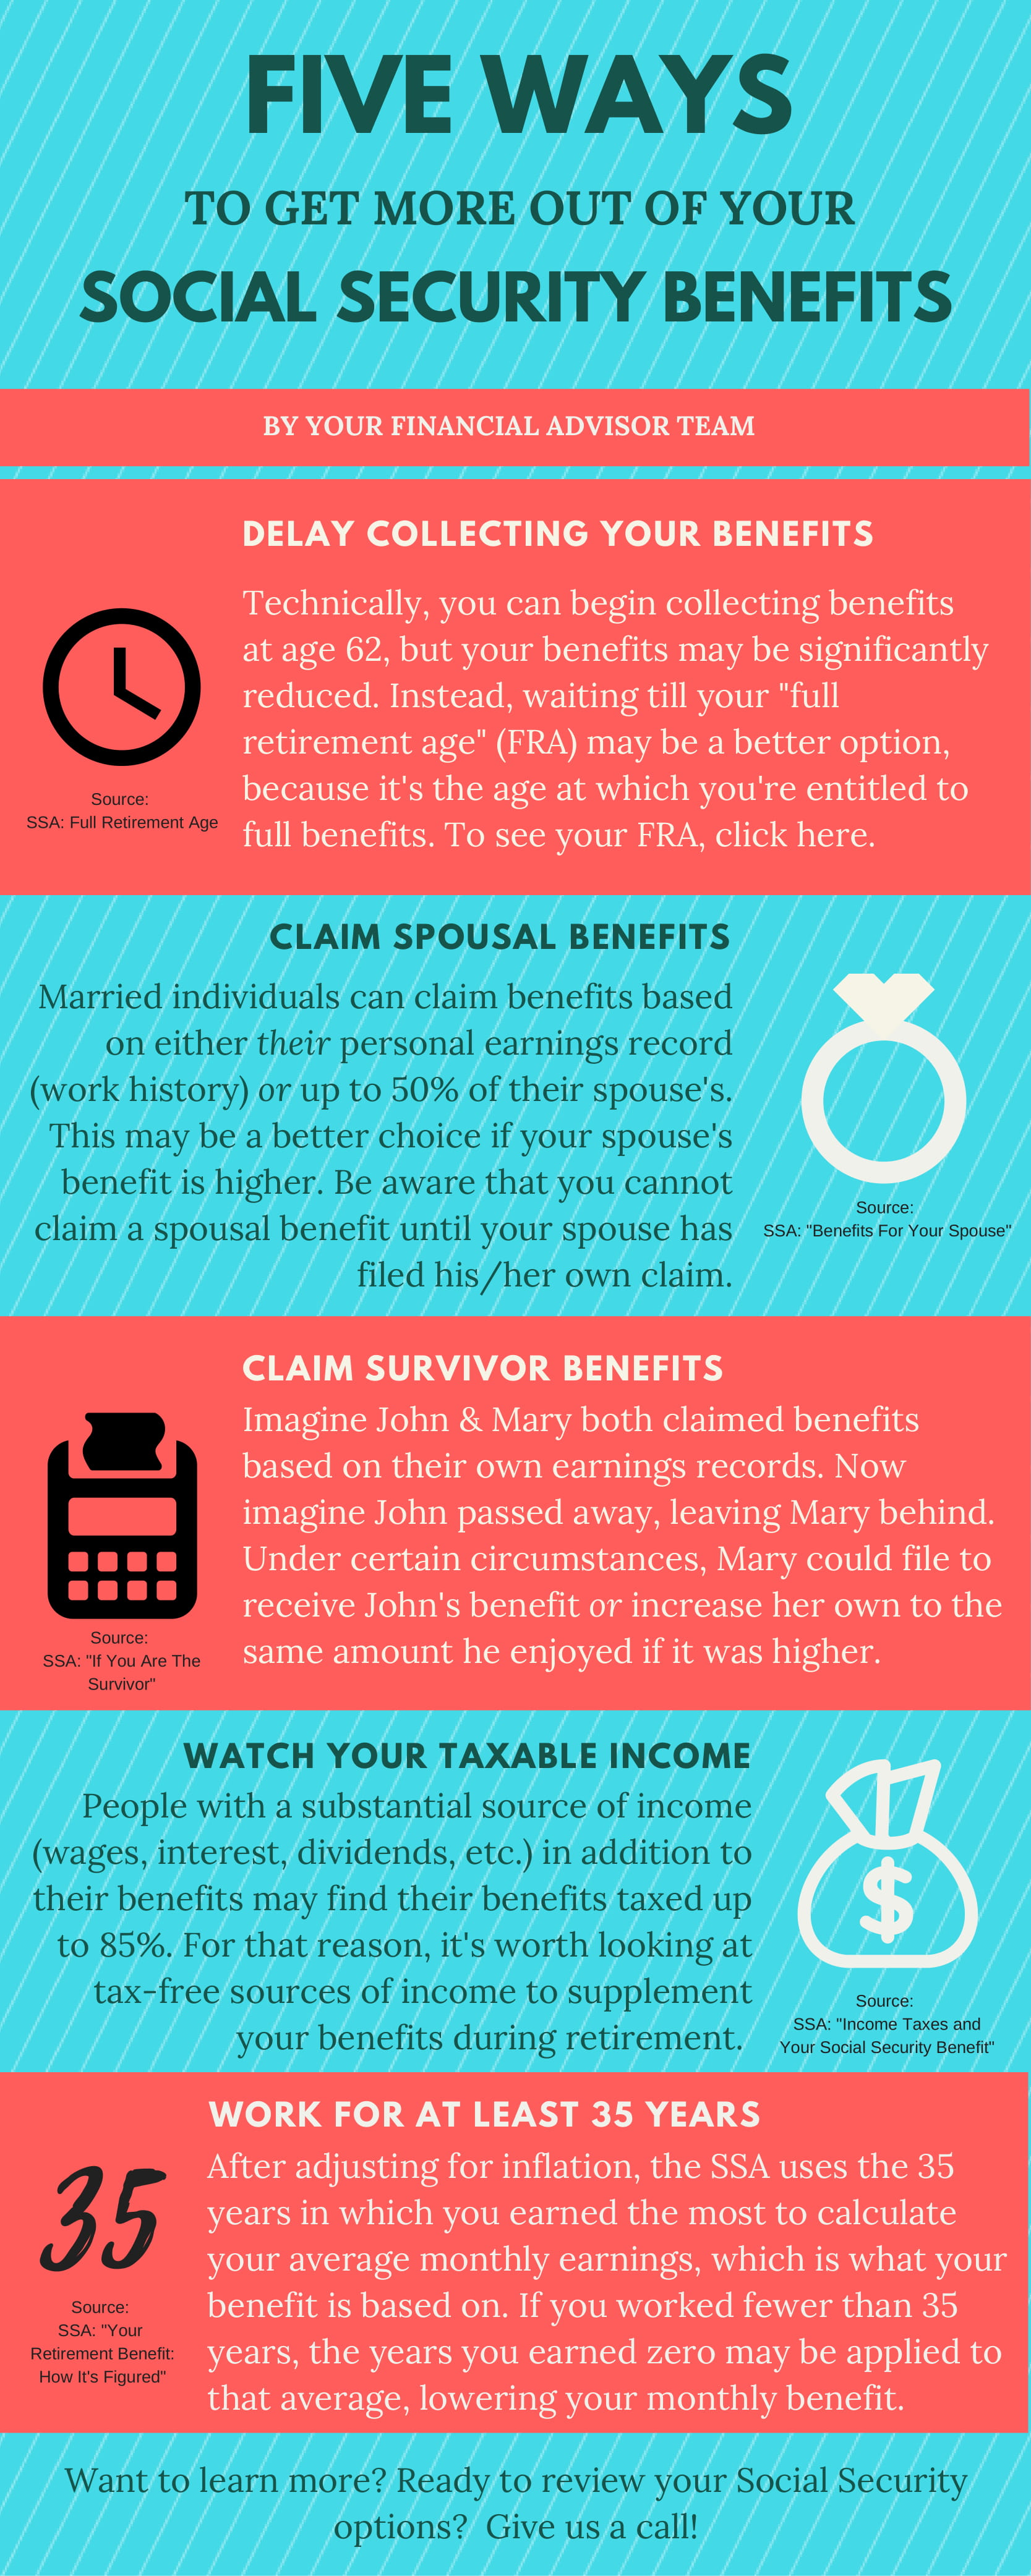 Five Ways to Get More Out of Social Security-1.jpg